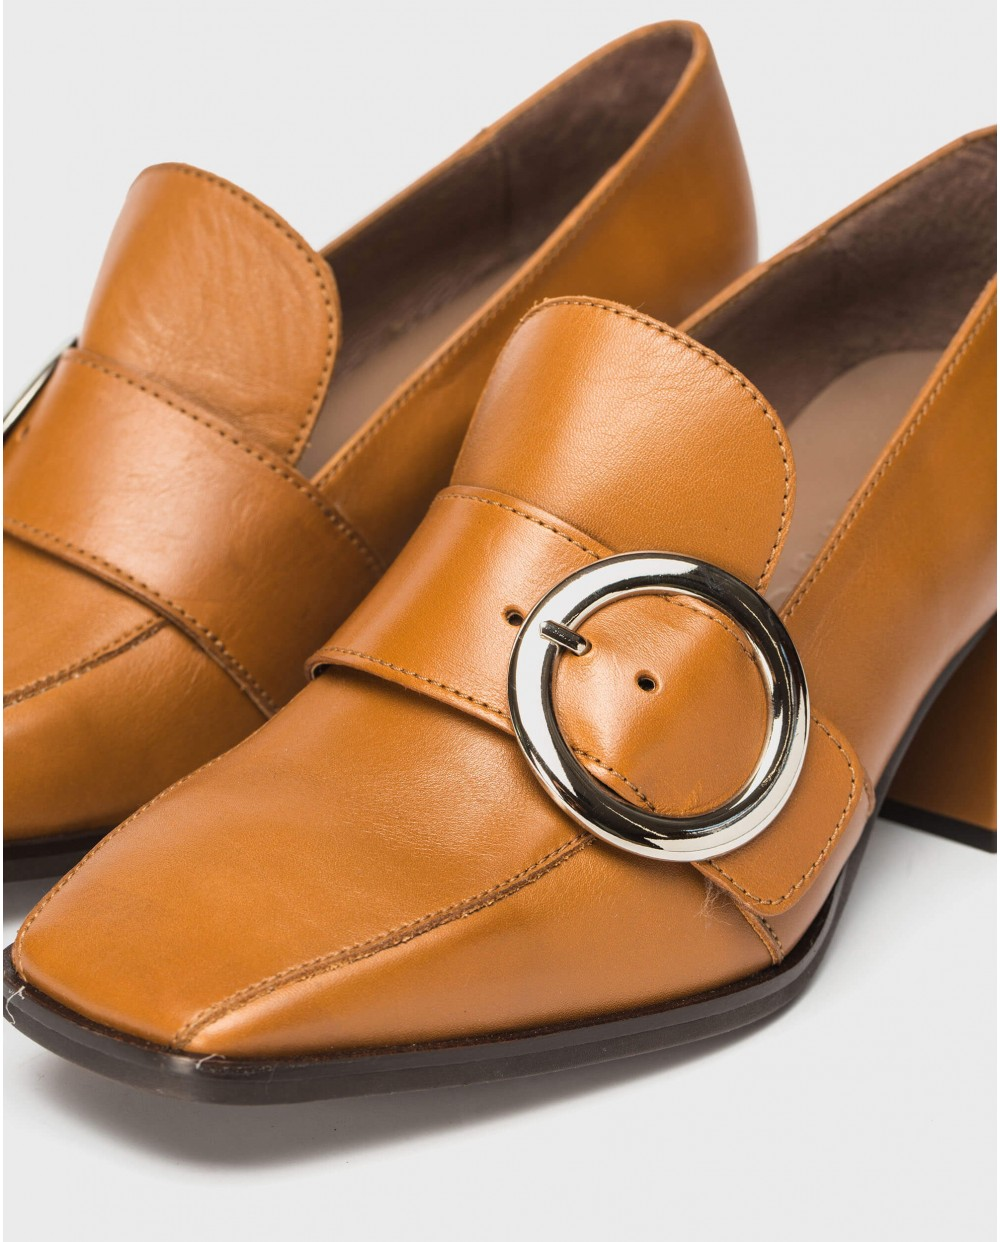 Wonders-Flat Shoes-High moccasin with buckle detail